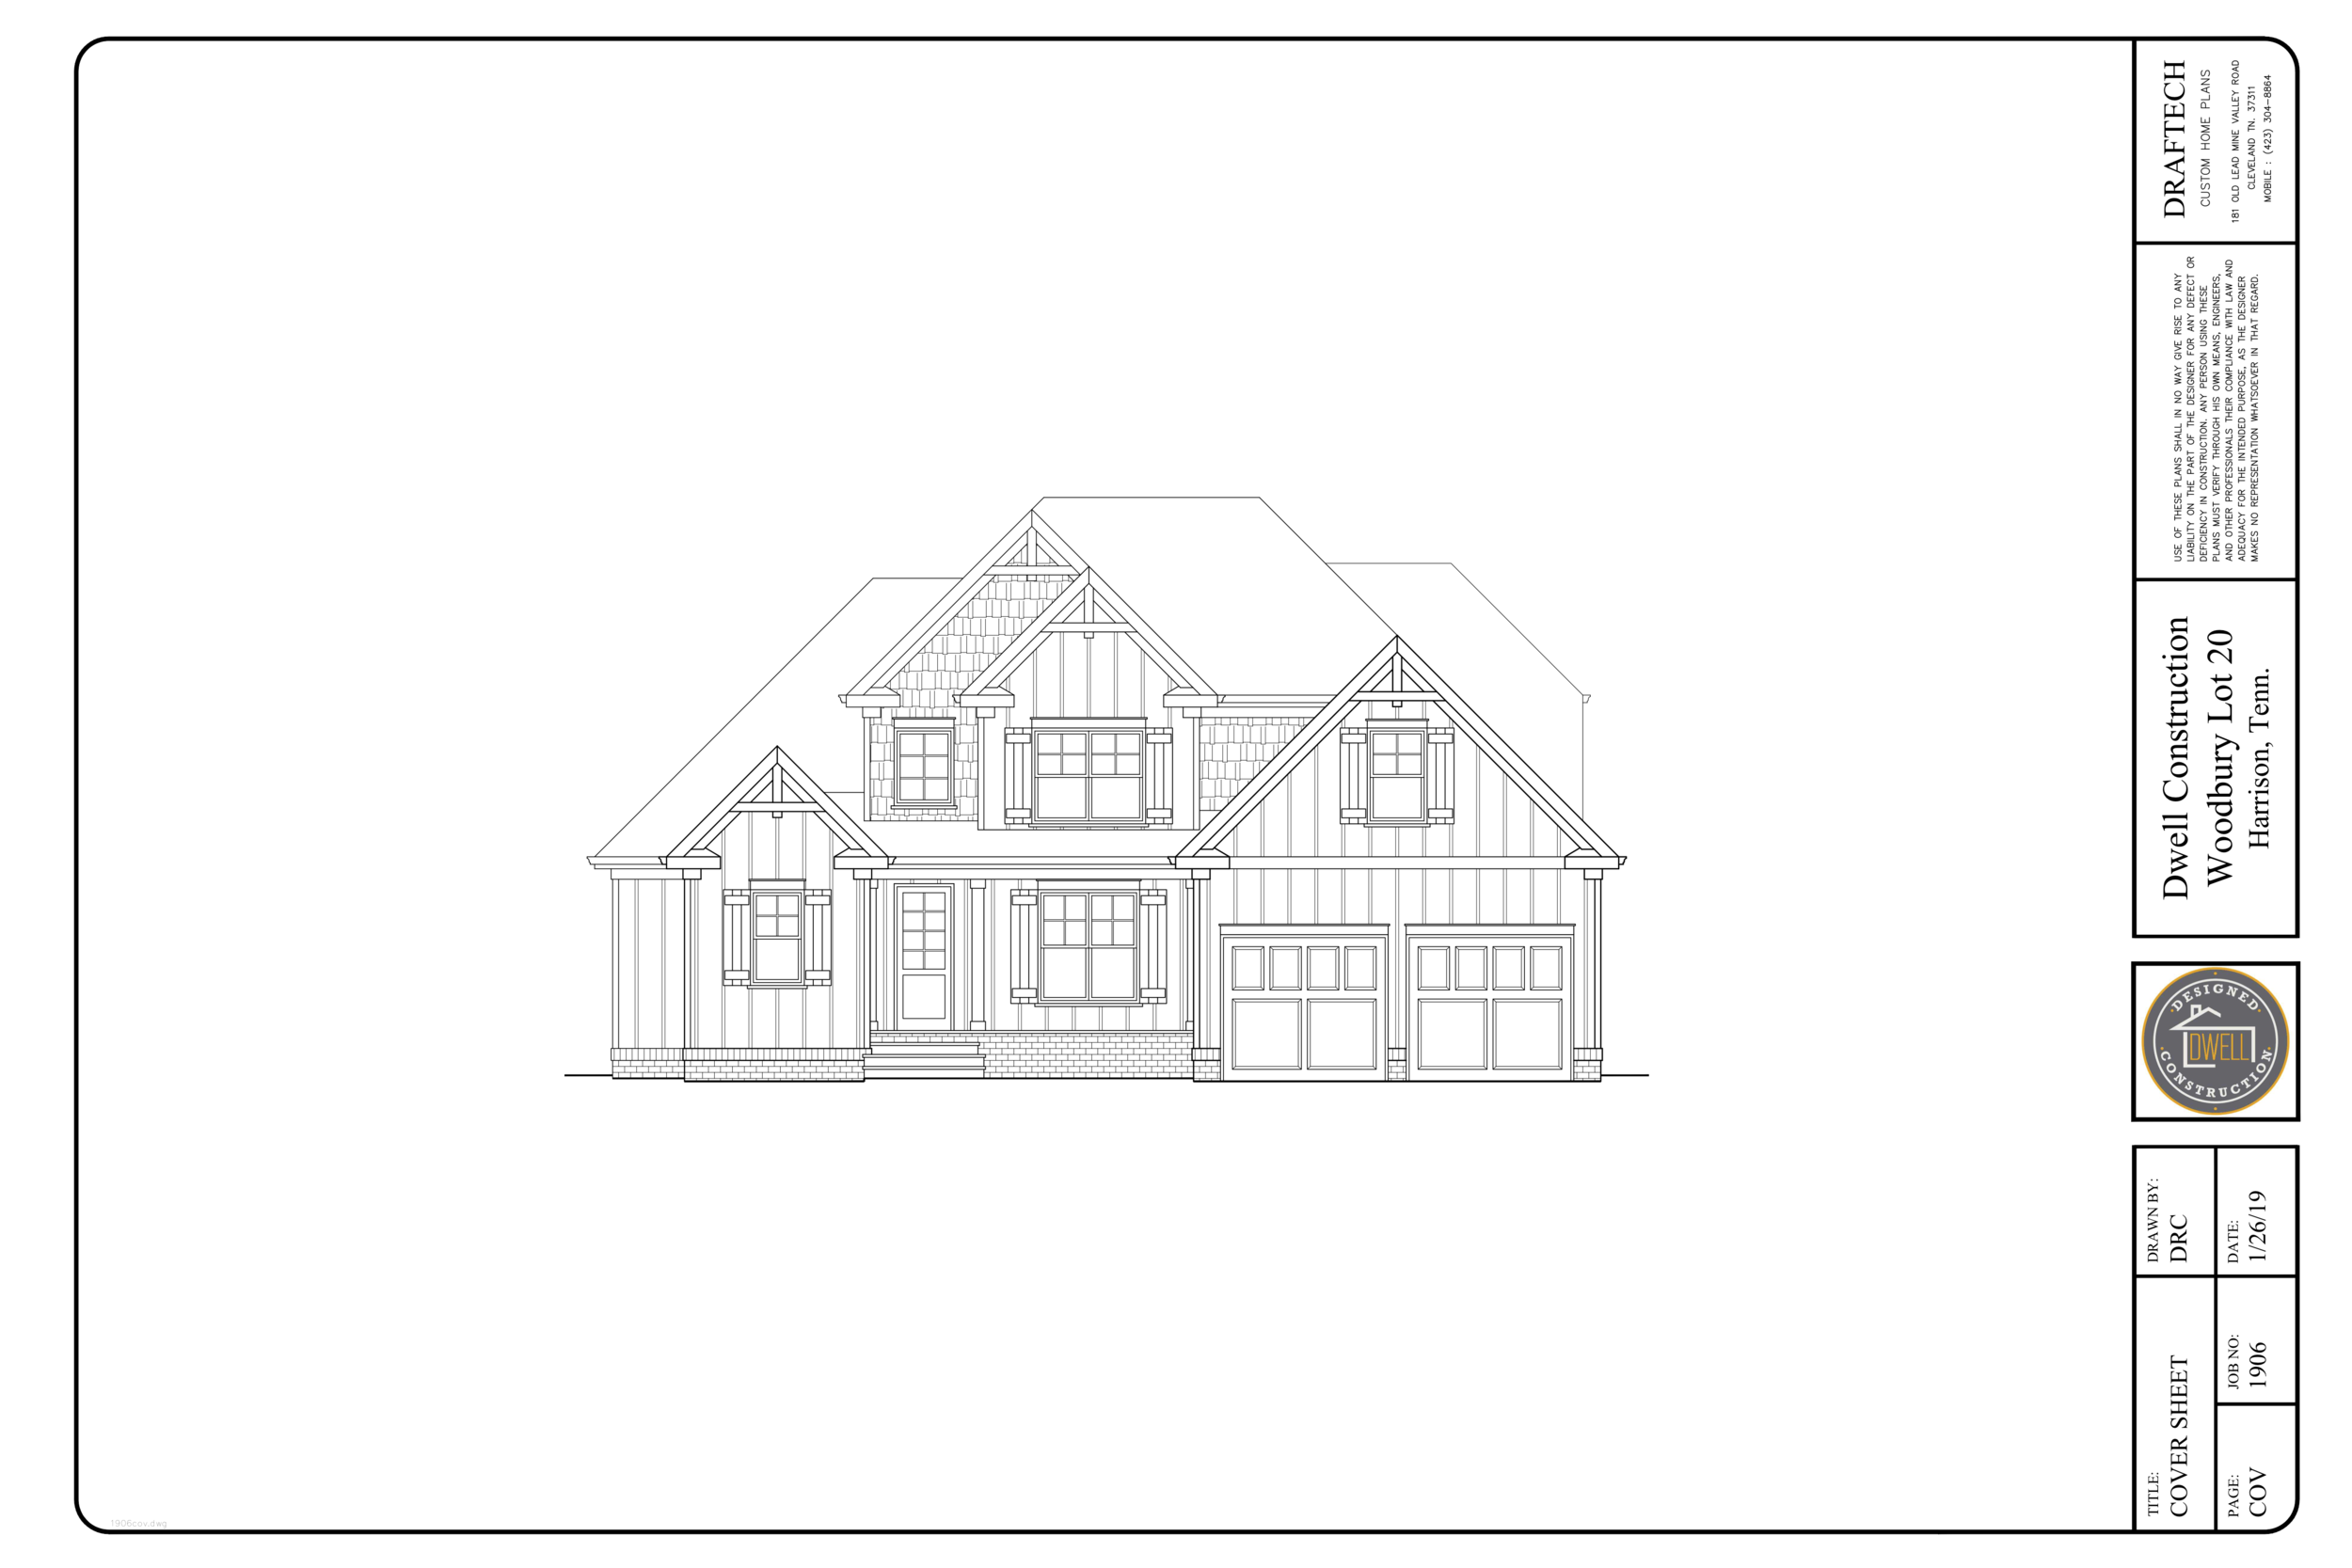 Lot 20 woodbury website picture for now png .png